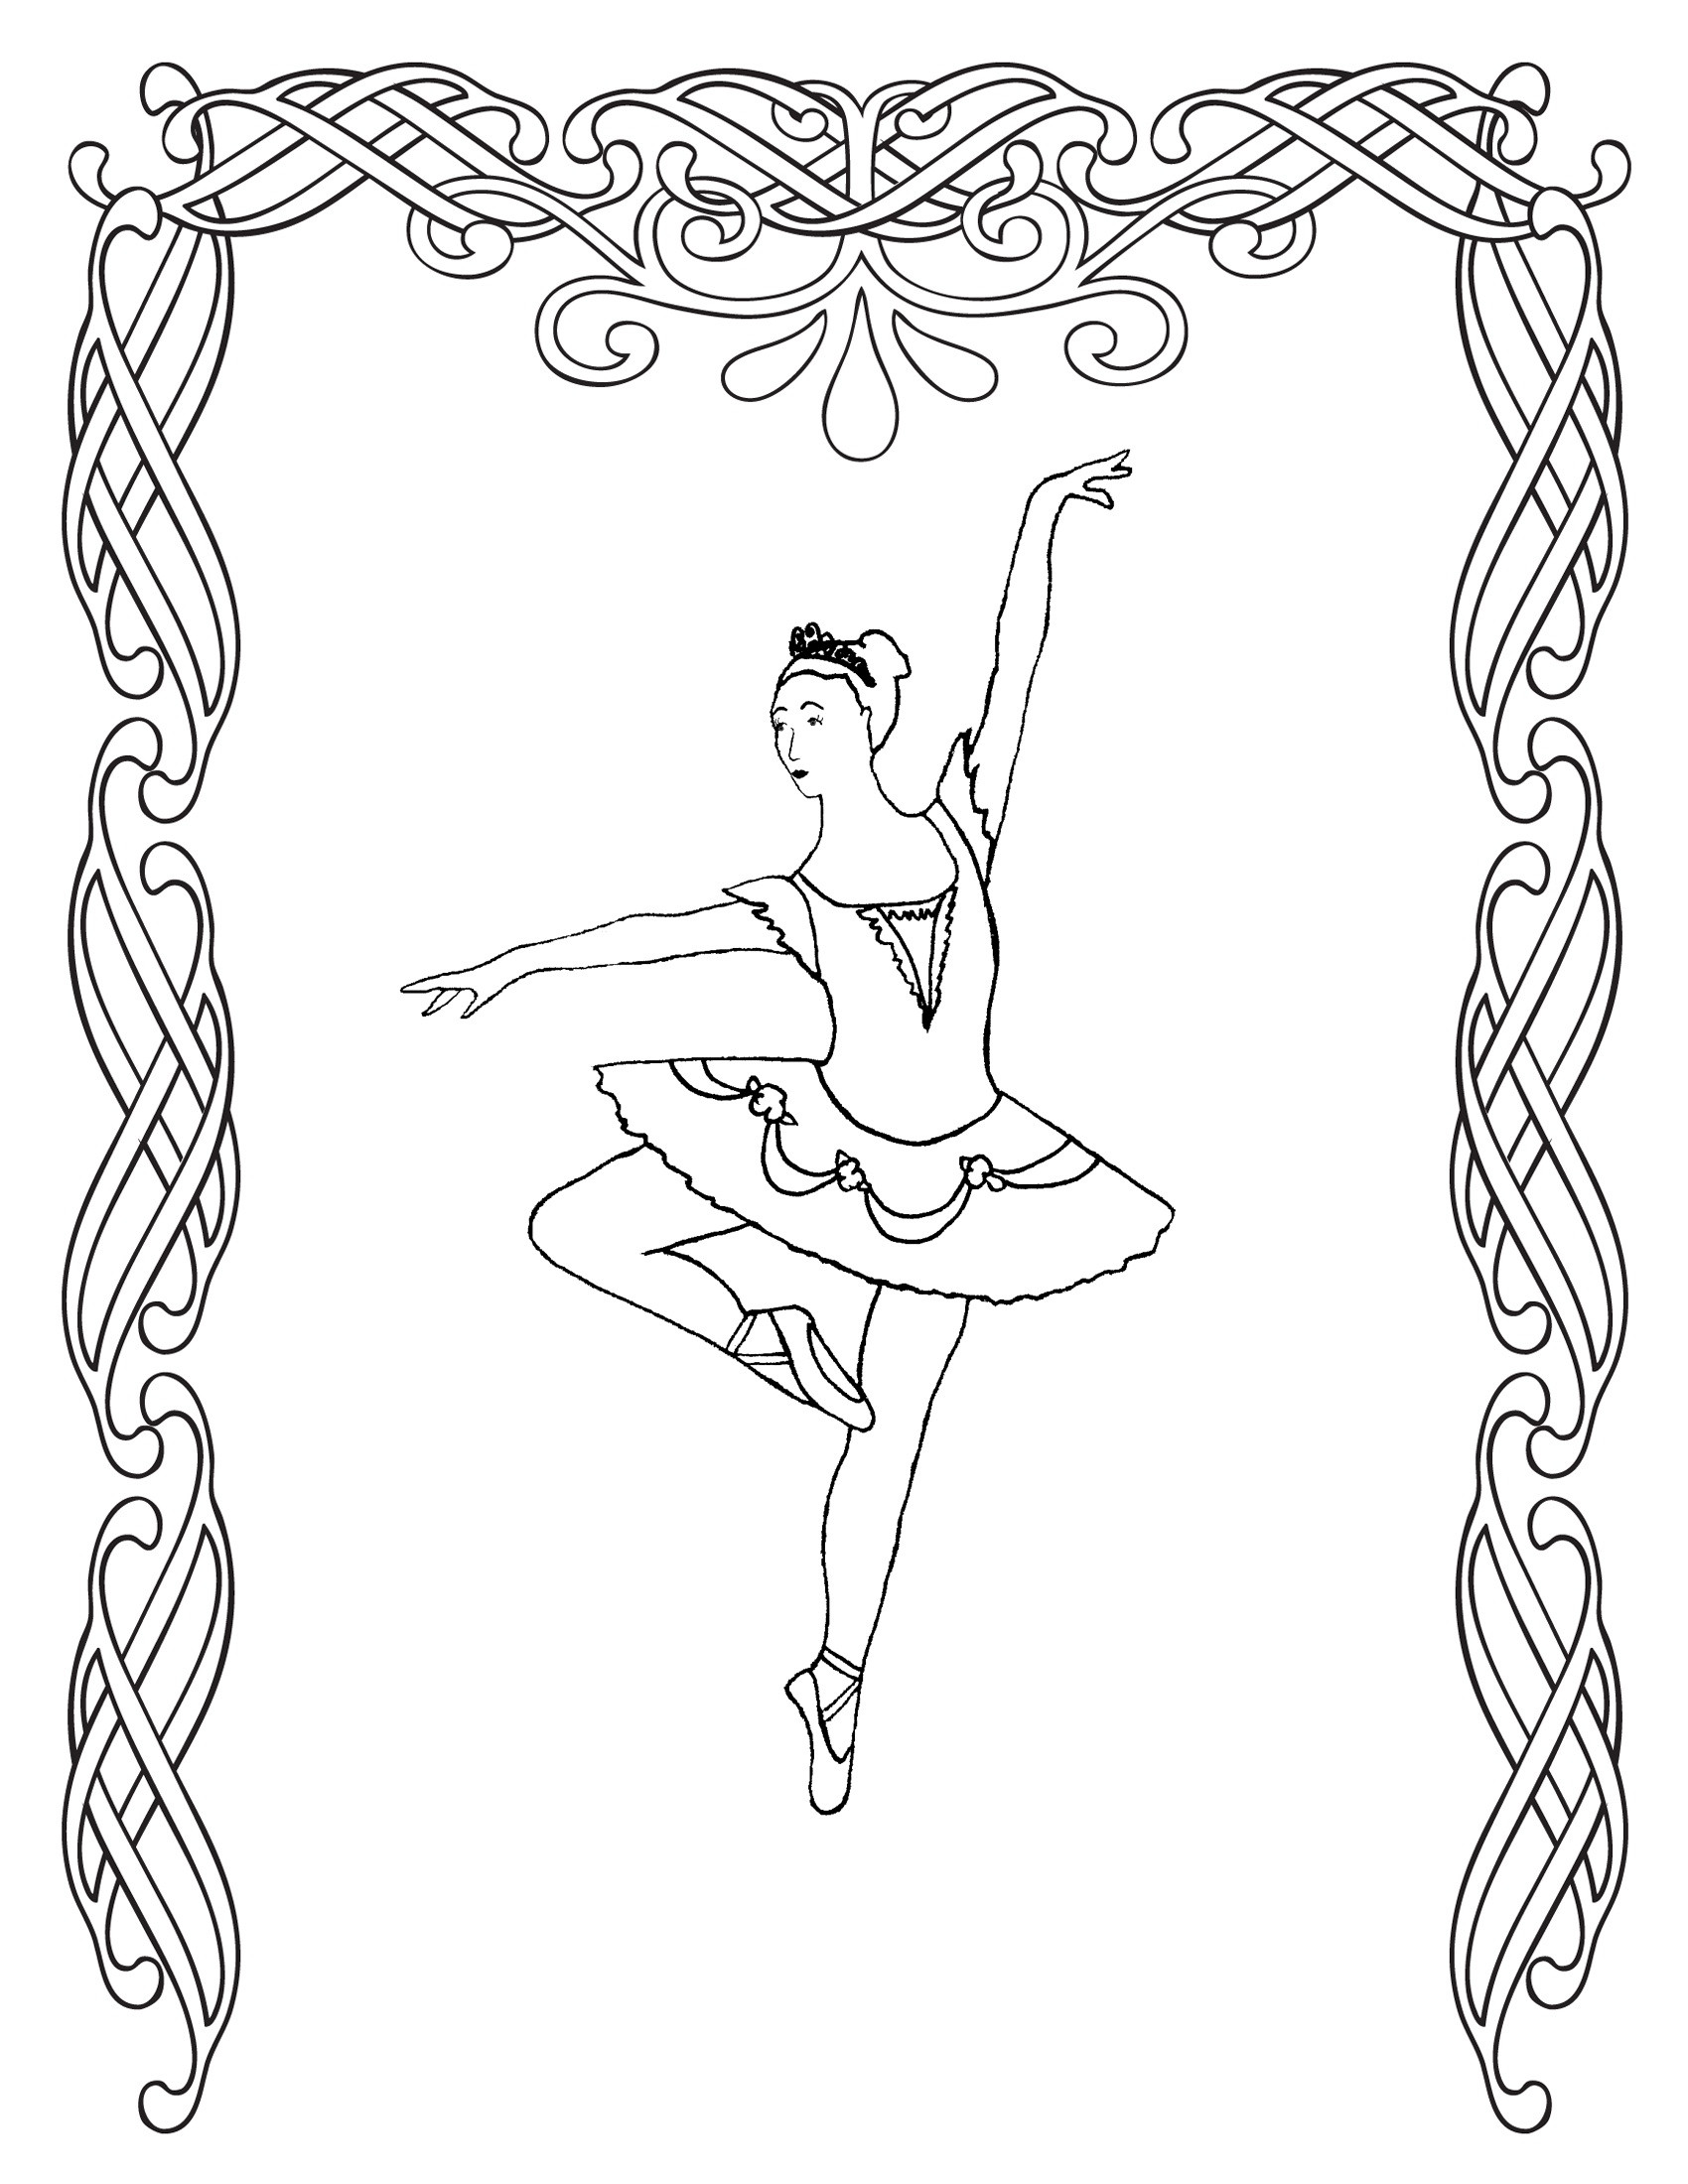 Dance Printable Coloring Pages  Free Printable Ballet Coloring Pages For Kids